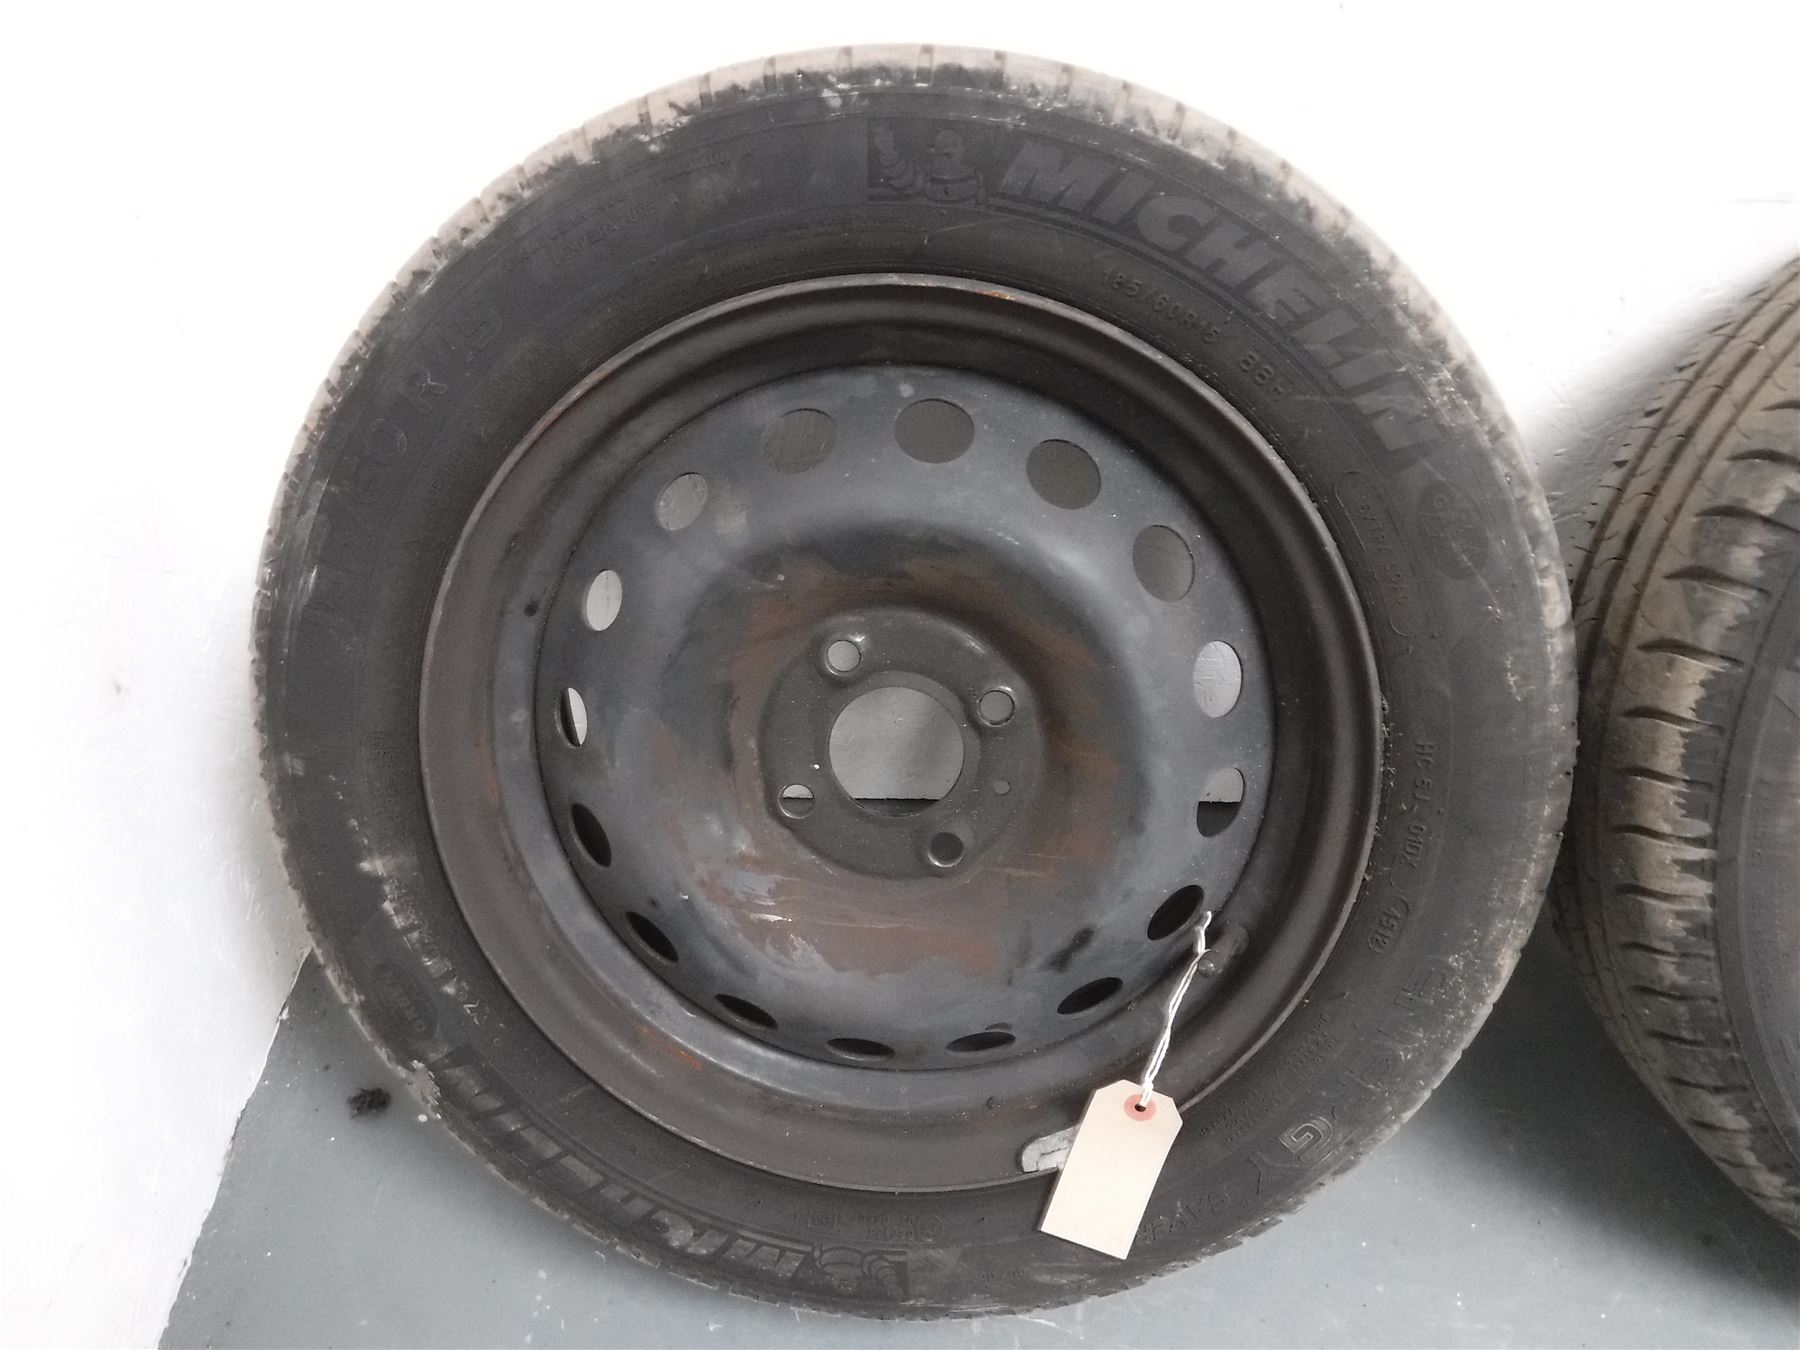 renault clio mk3 2005 2009 steel wheel tyre 185 60 r15 michelin ebay. Black Bedroom Furniture Sets. Home Design Ideas